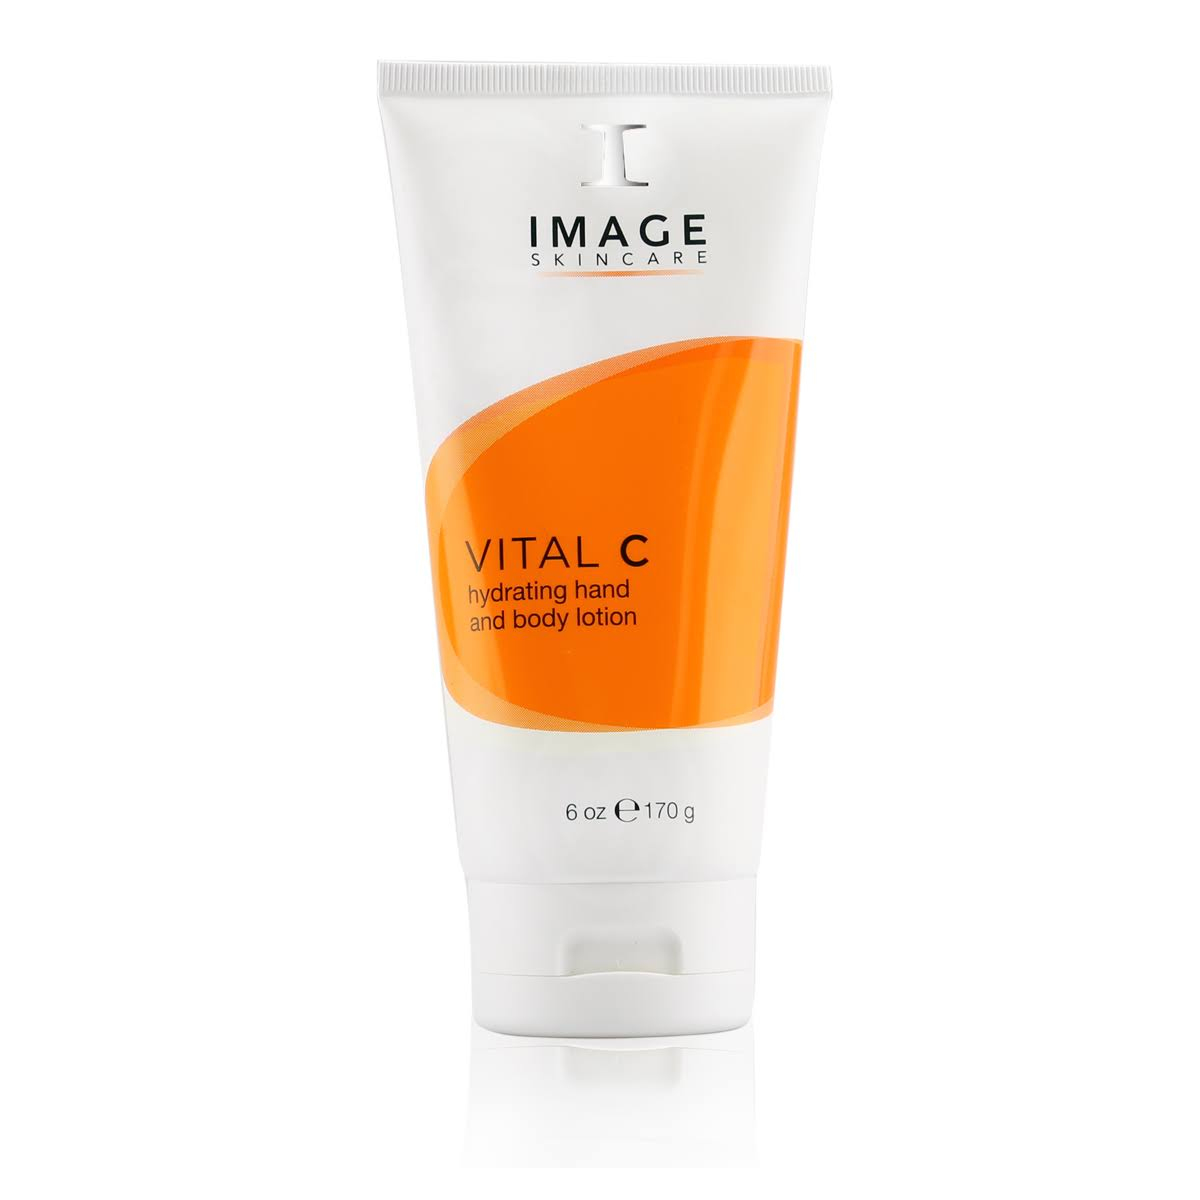 Image Skincare Vital C Hydrating Hand and Body Lotion - 6oz